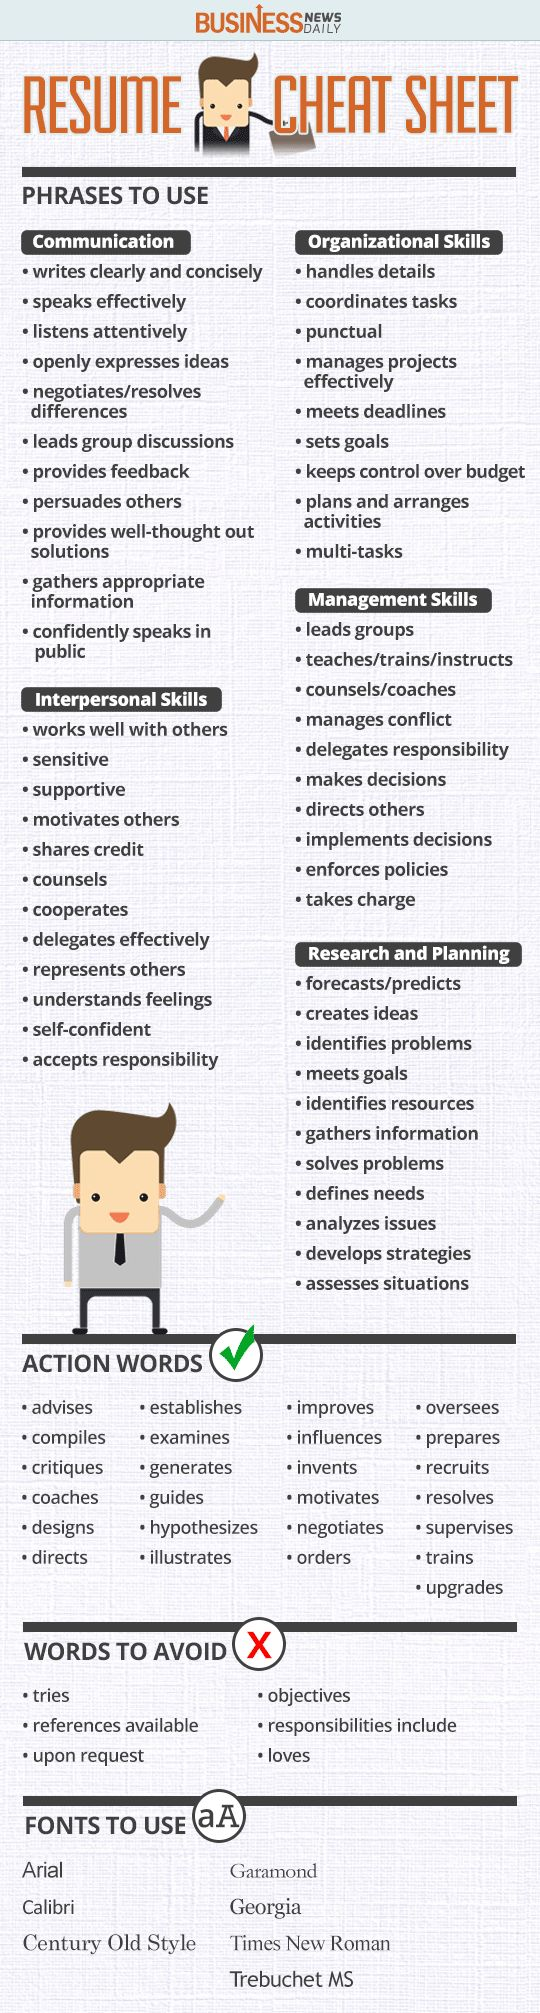 Opposenewapstandardsus  Picturesque  Ideas About Resume On Pinterest  Cv Format Resume Cv And  With Outstanding Resume Cheat Sheet Infographic Andrews Almost Done With A Complete Unit On Employment Which With Captivating Film Production Resume Also Great Resume Words In Addition Medical Coder Resume And Community Service Resume As Well As Standard Resume Template Additionally Copy And Paste Resume Template From Pinterestcom With Opposenewapstandardsus  Outstanding  Ideas About Resume On Pinterest  Cv Format Resume Cv And  With Captivating Resume Cheat Sheet Infographic Andrews Almost Done With A Complete Unit On Employment Which And Picturesque Film Production Resume Also Great Resume Words In Addition Medical Coder Resume From Pinterestcom